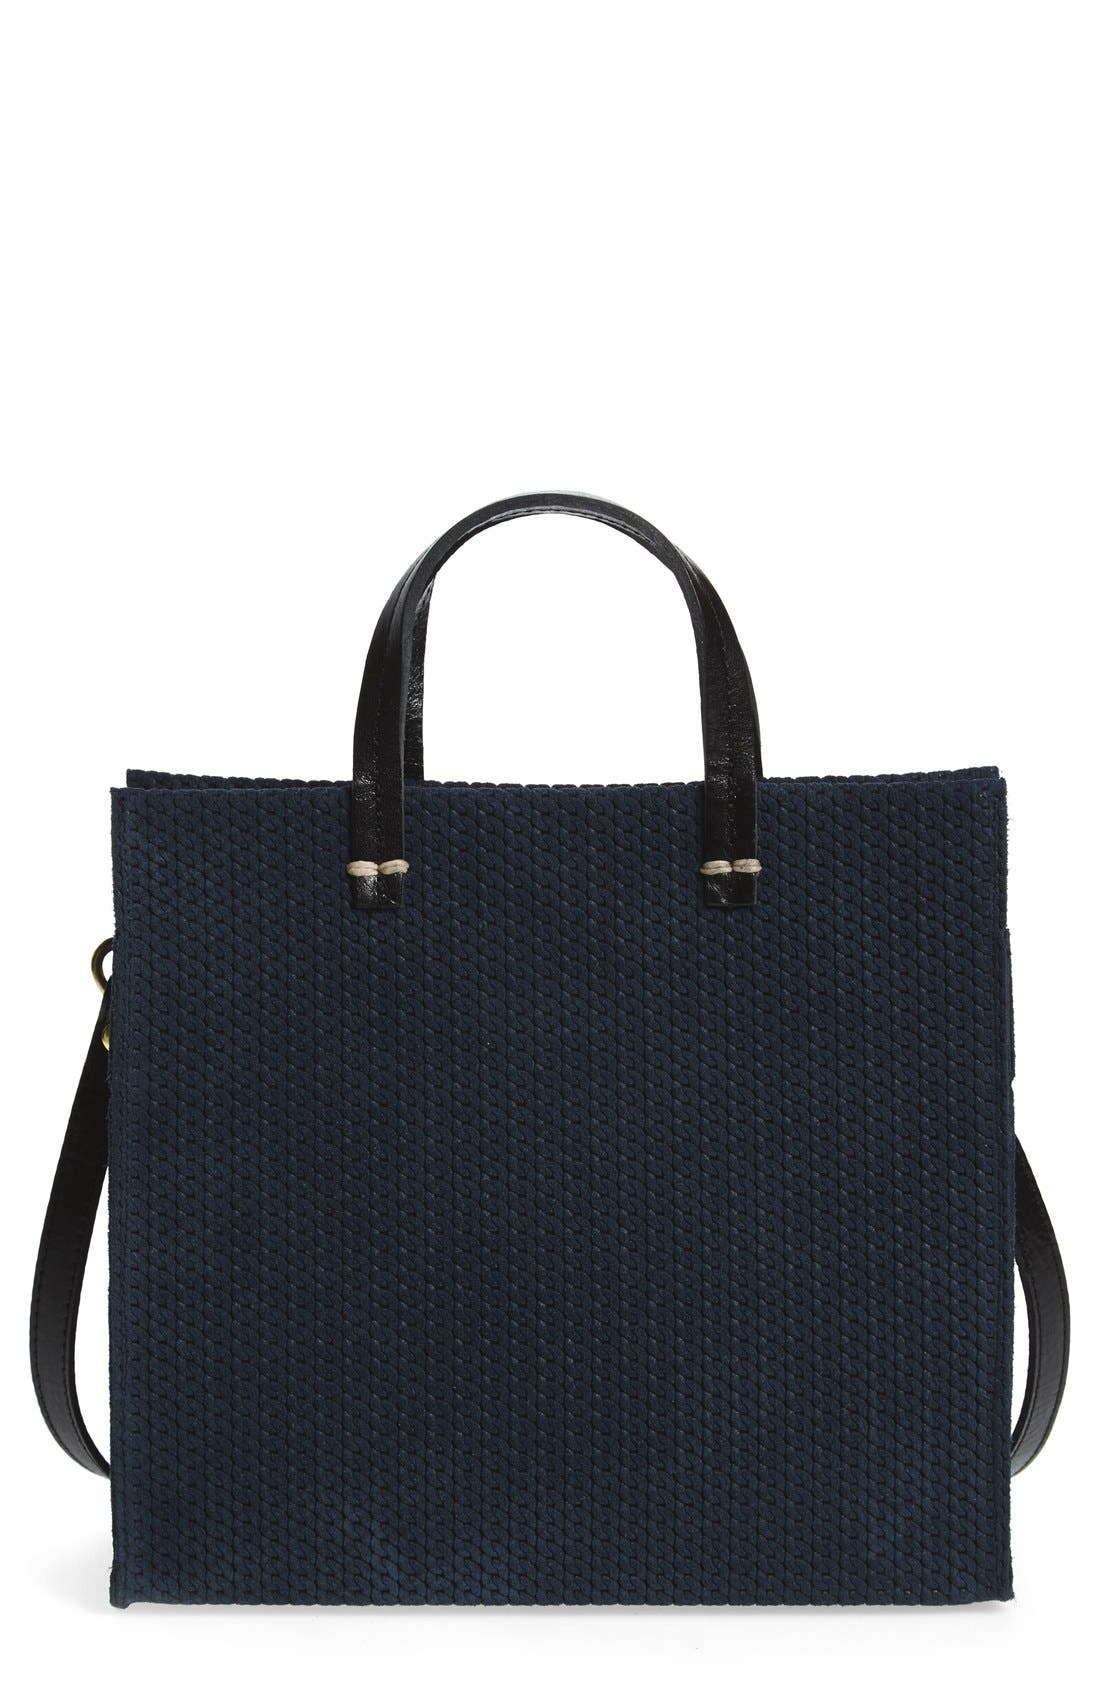 Main Image - Clare V. 'Petite Simple - Marine Rope' Woven Suede Tote